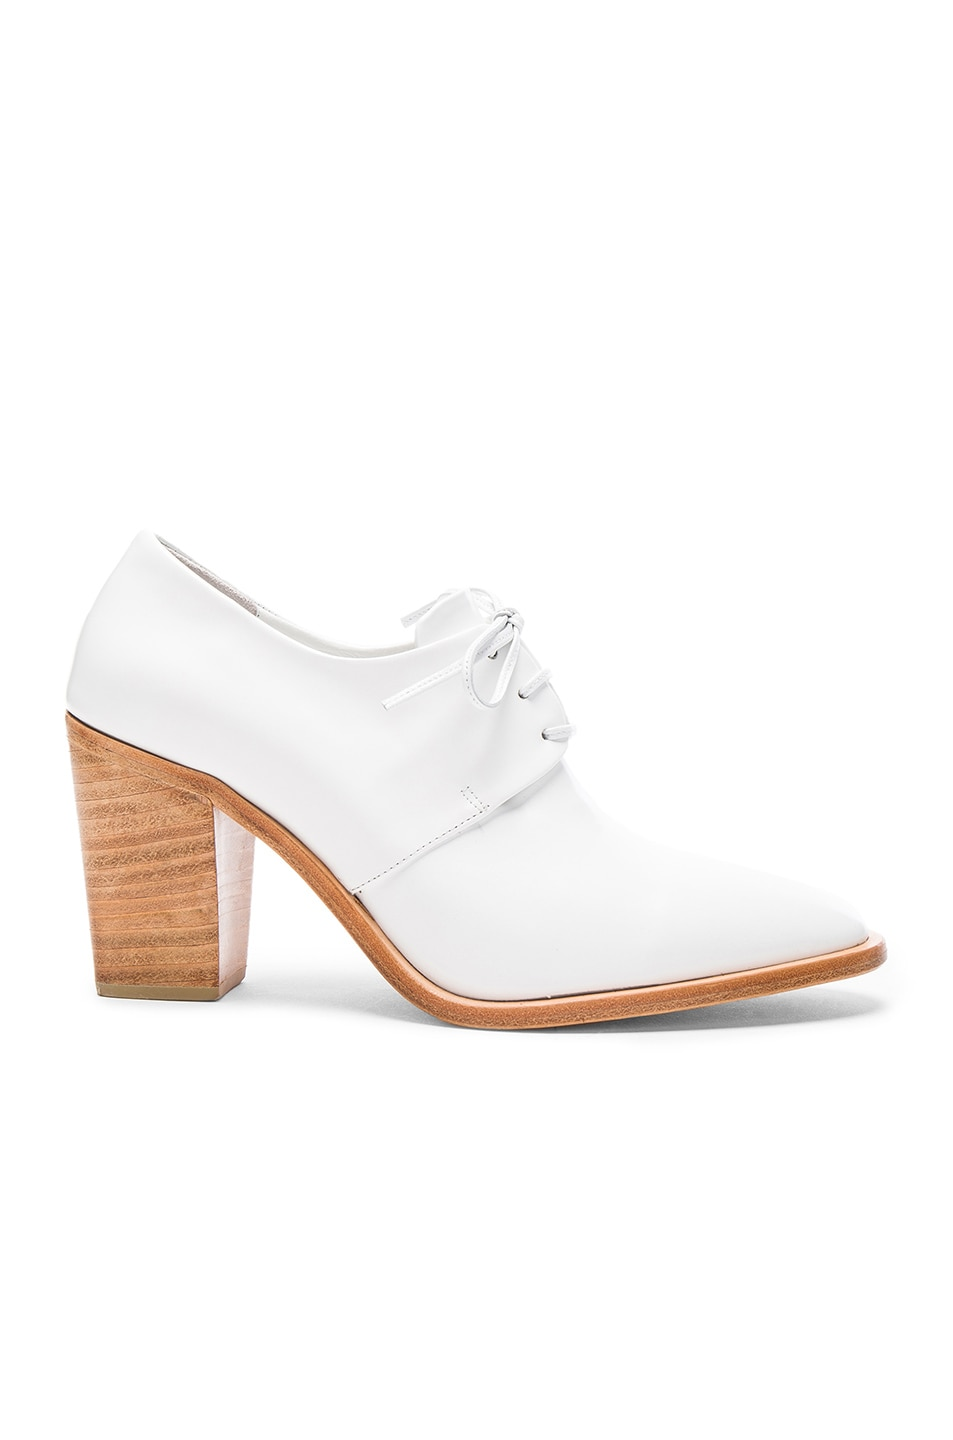 Image 1 of Maryam Nassir Zadeh Leather Flavia Heeled Loafers in White Shine